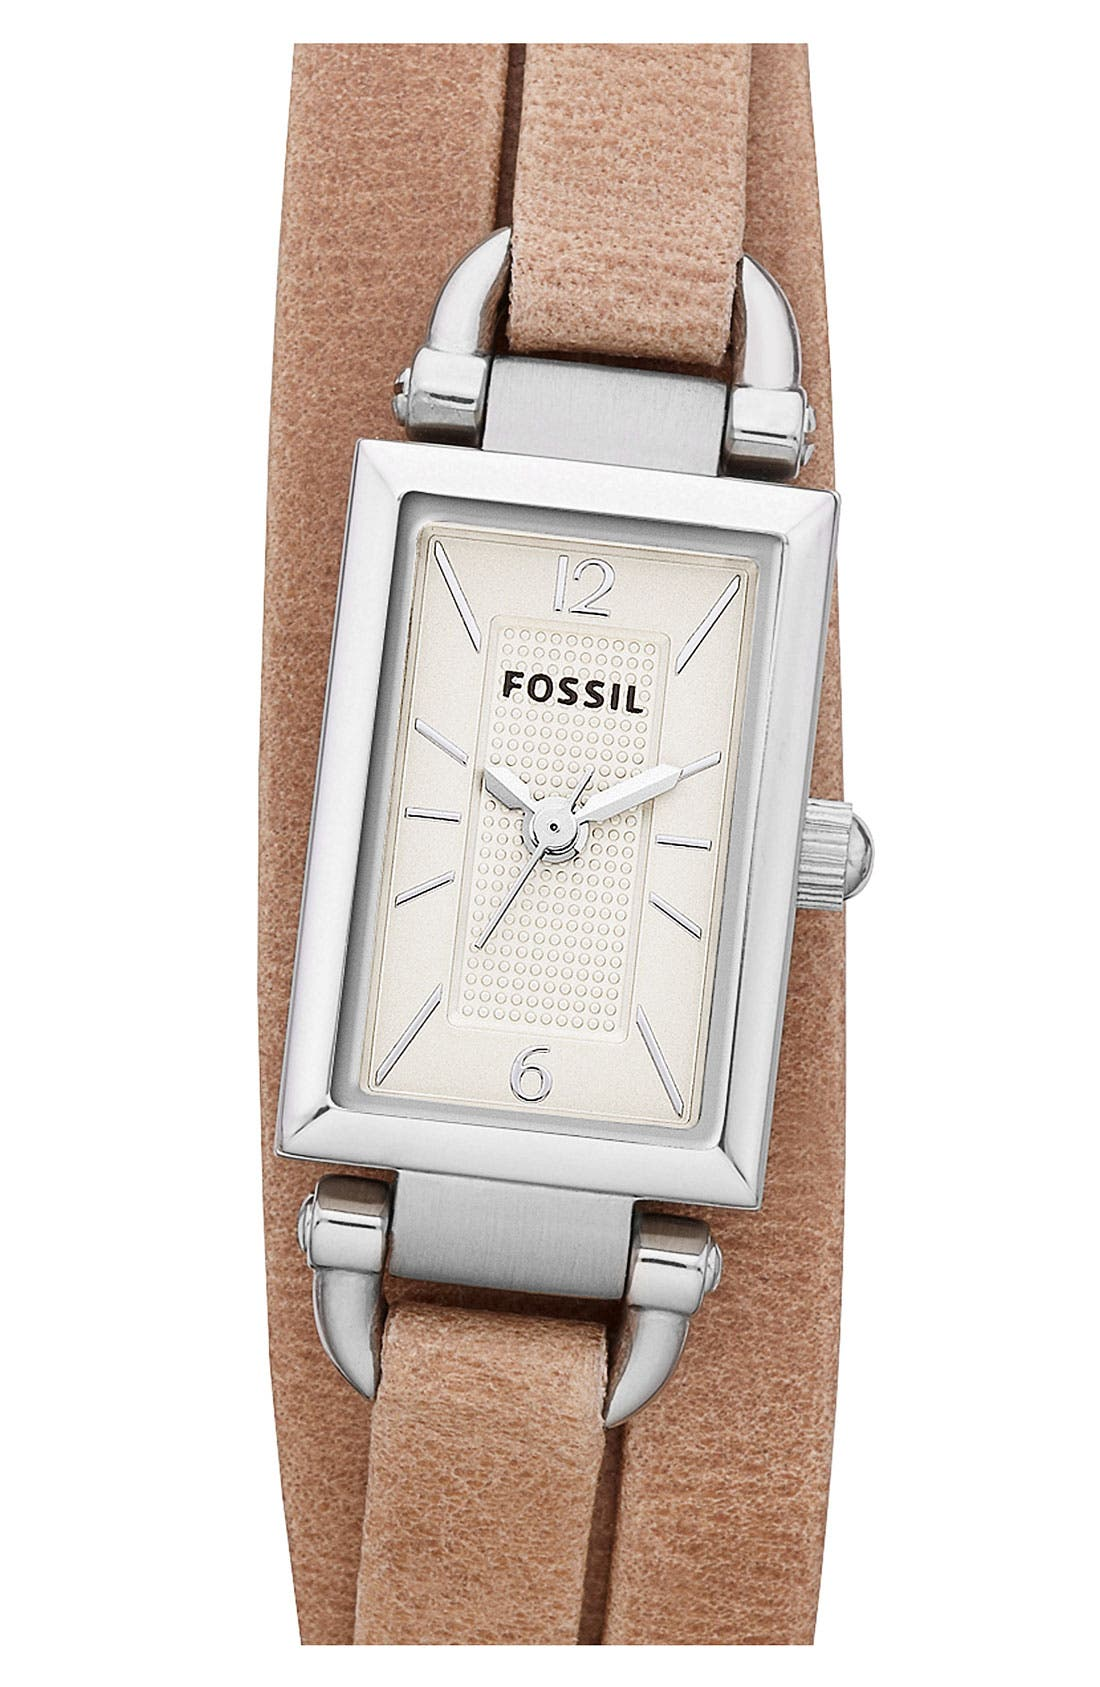 Alternate Image 1 Selected - Fossil 'Delaney' Leather Strap Watch, 16mm x 23mm